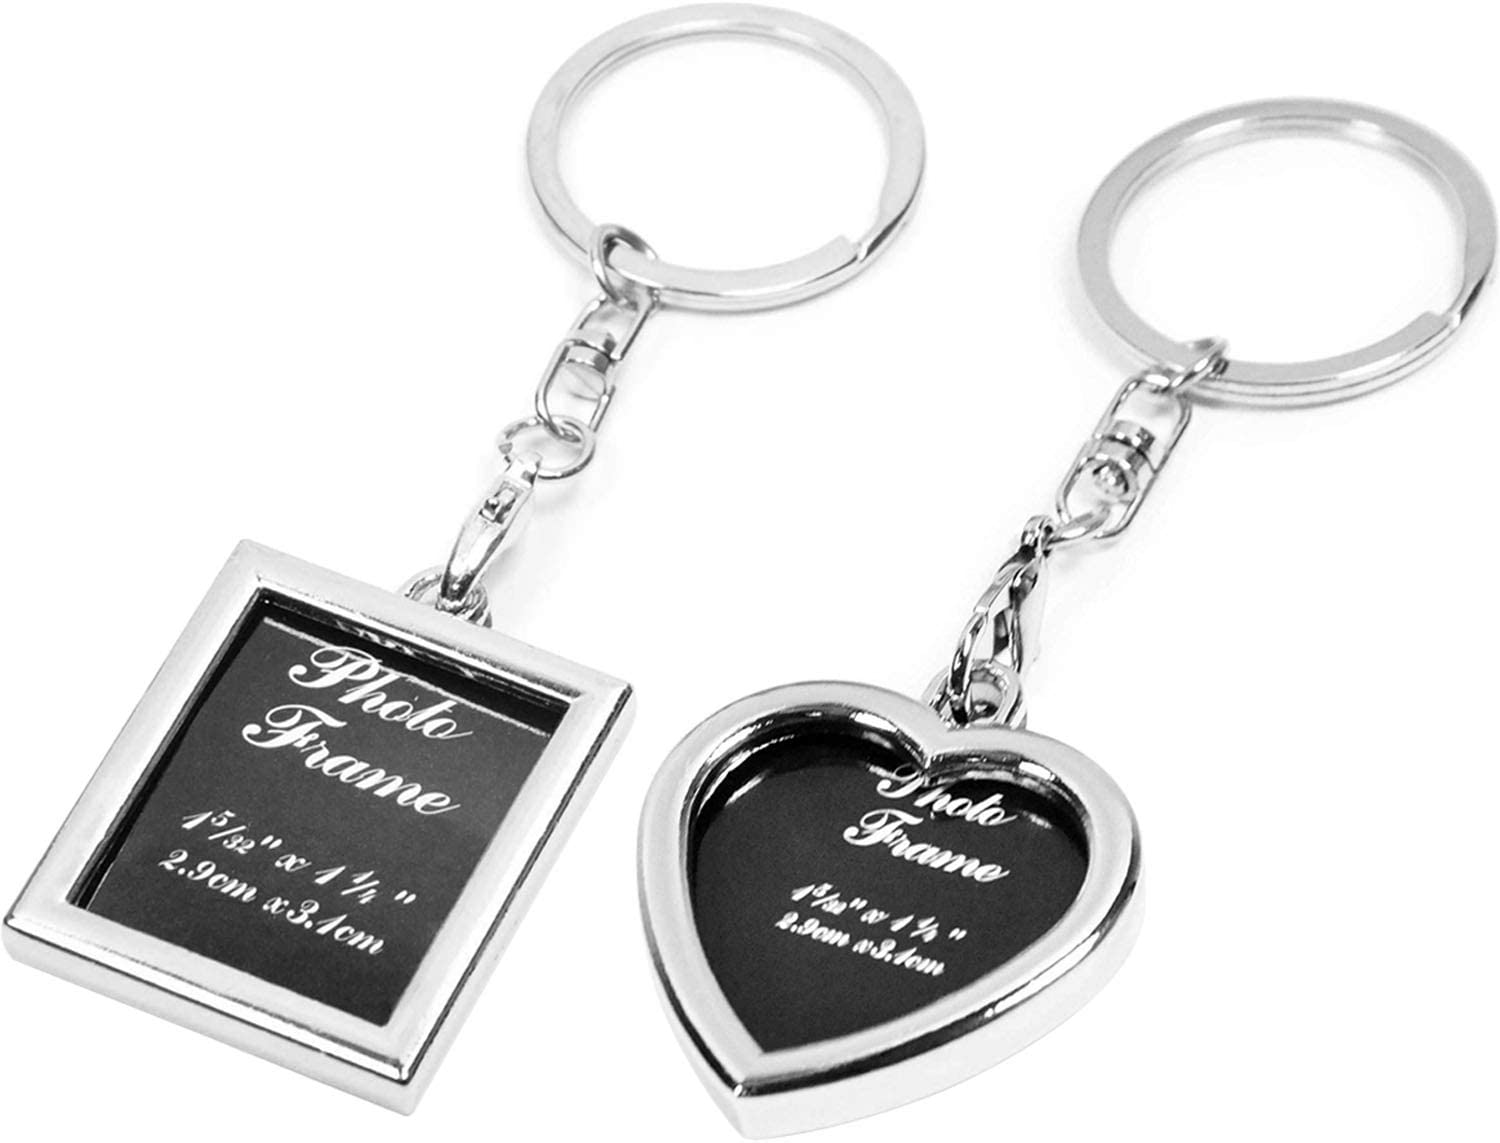 Onwon 2 Pieces Photo Frame Keychain Metal Frame Key Chain Ornament Locket Picture Frame Keyring Heart Apple Circle Oval Oblong Square Rectangle Family Lover Friend Keepsake Gifts (Heart & Rectangle)